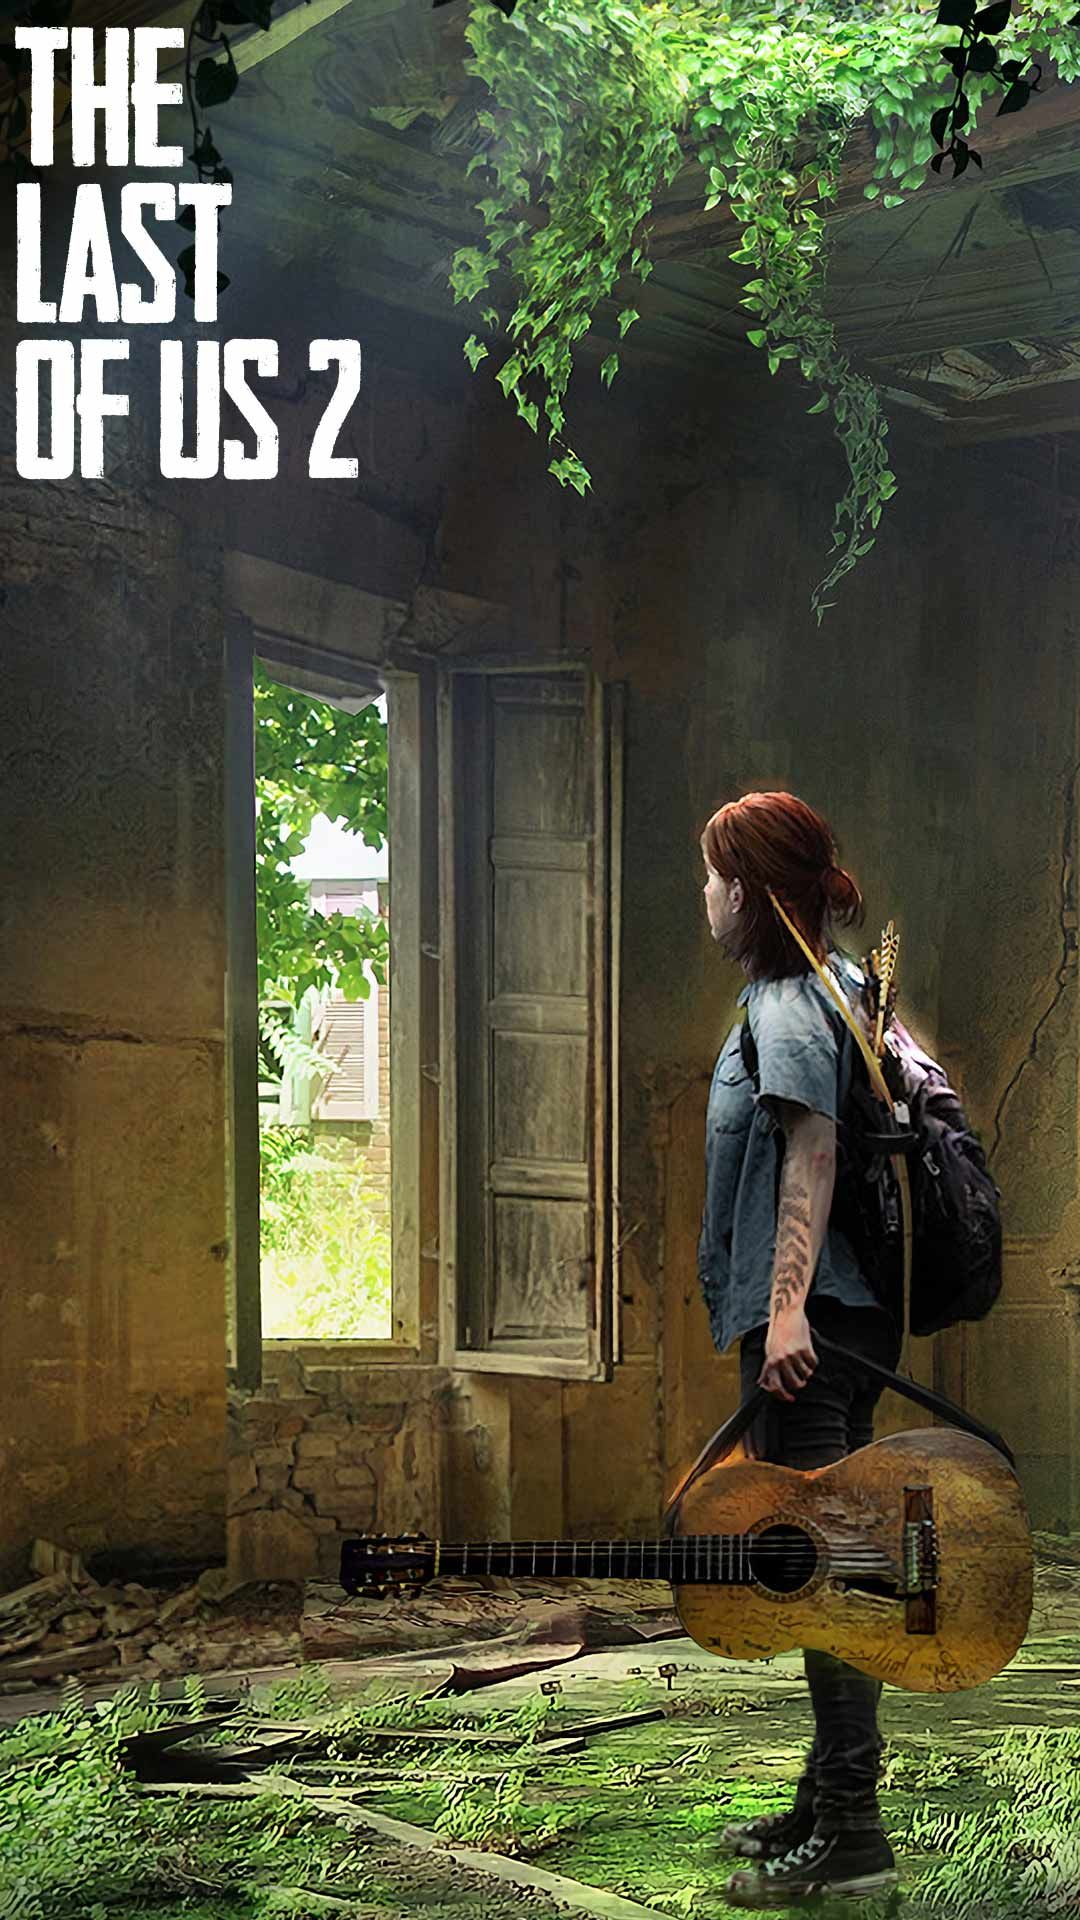 The Last Of Us Part 2 Wallpaper Hd Phone Backgrounds Ps4 Game Art Poster On Iphone Android The Last Of Us Last Of Us Part 2 Wallpaper Ellie The Last Of Us